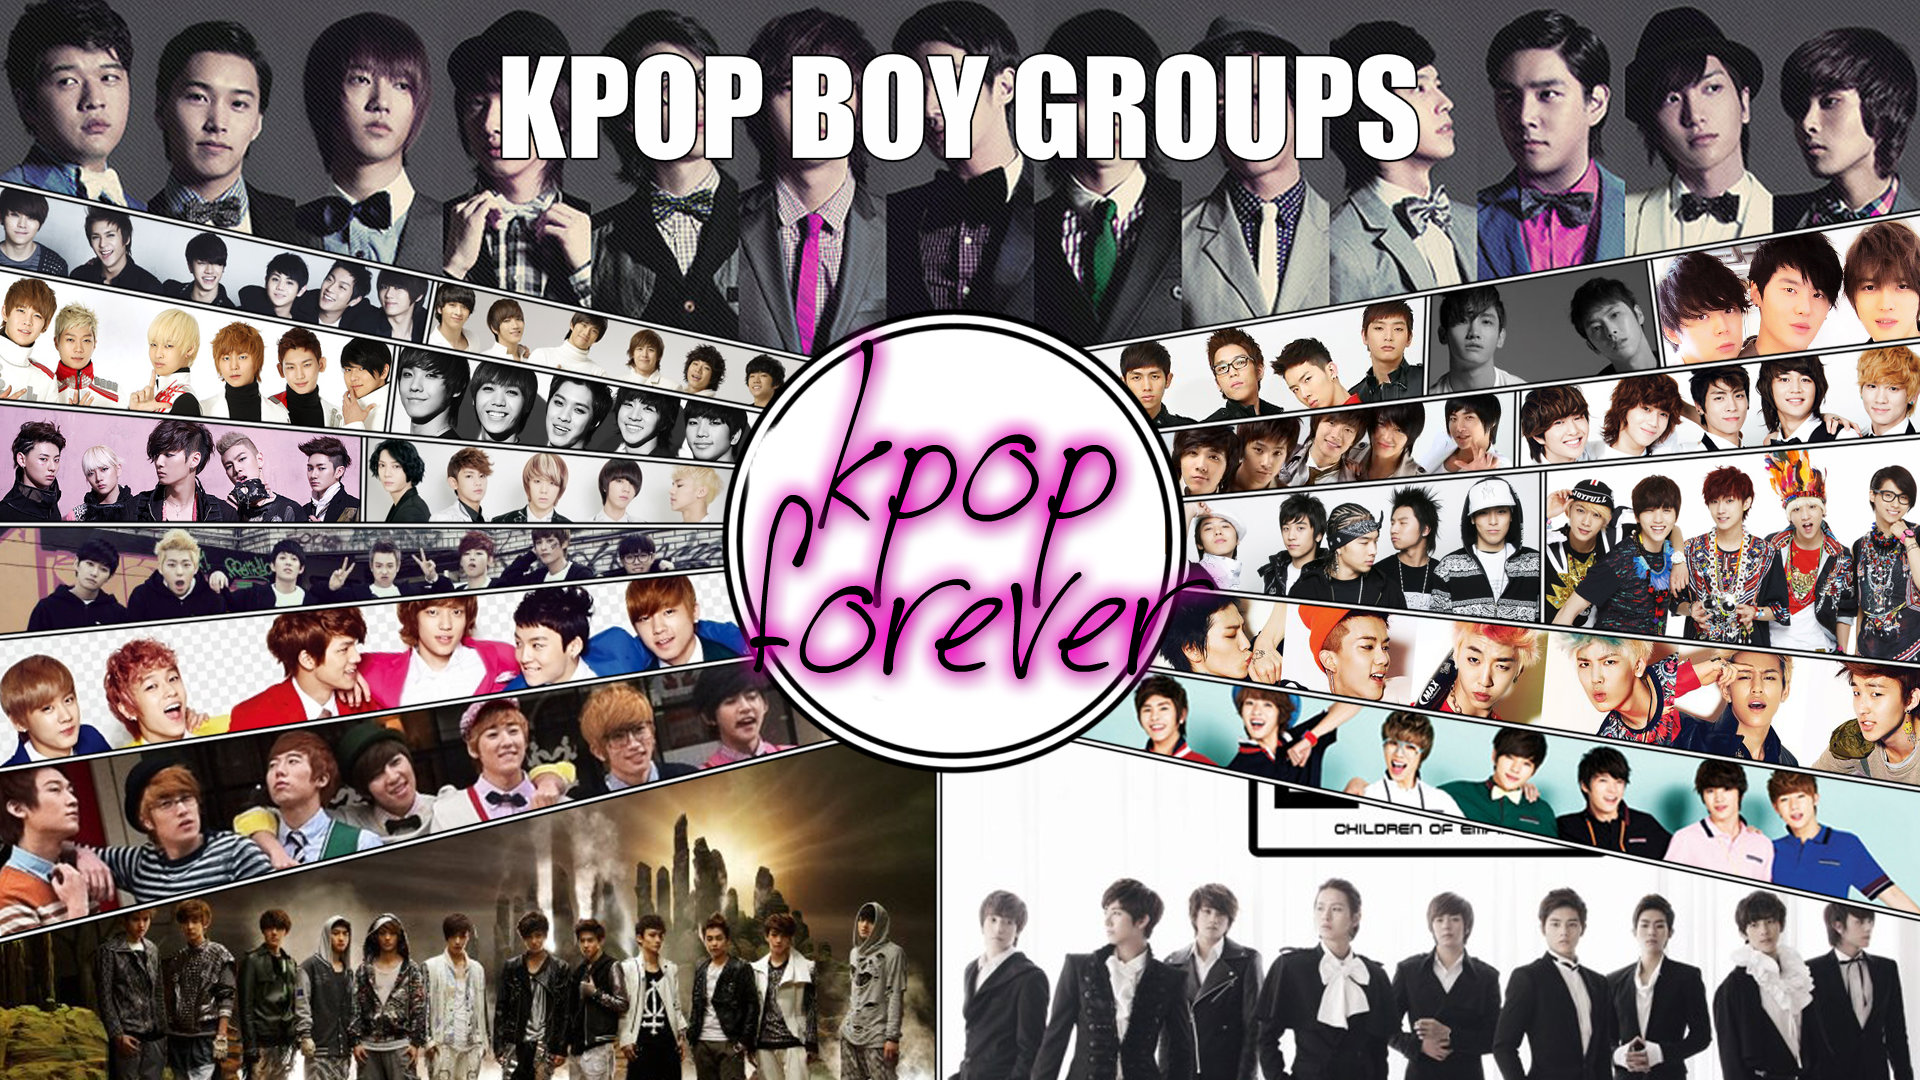 kpop groups boys